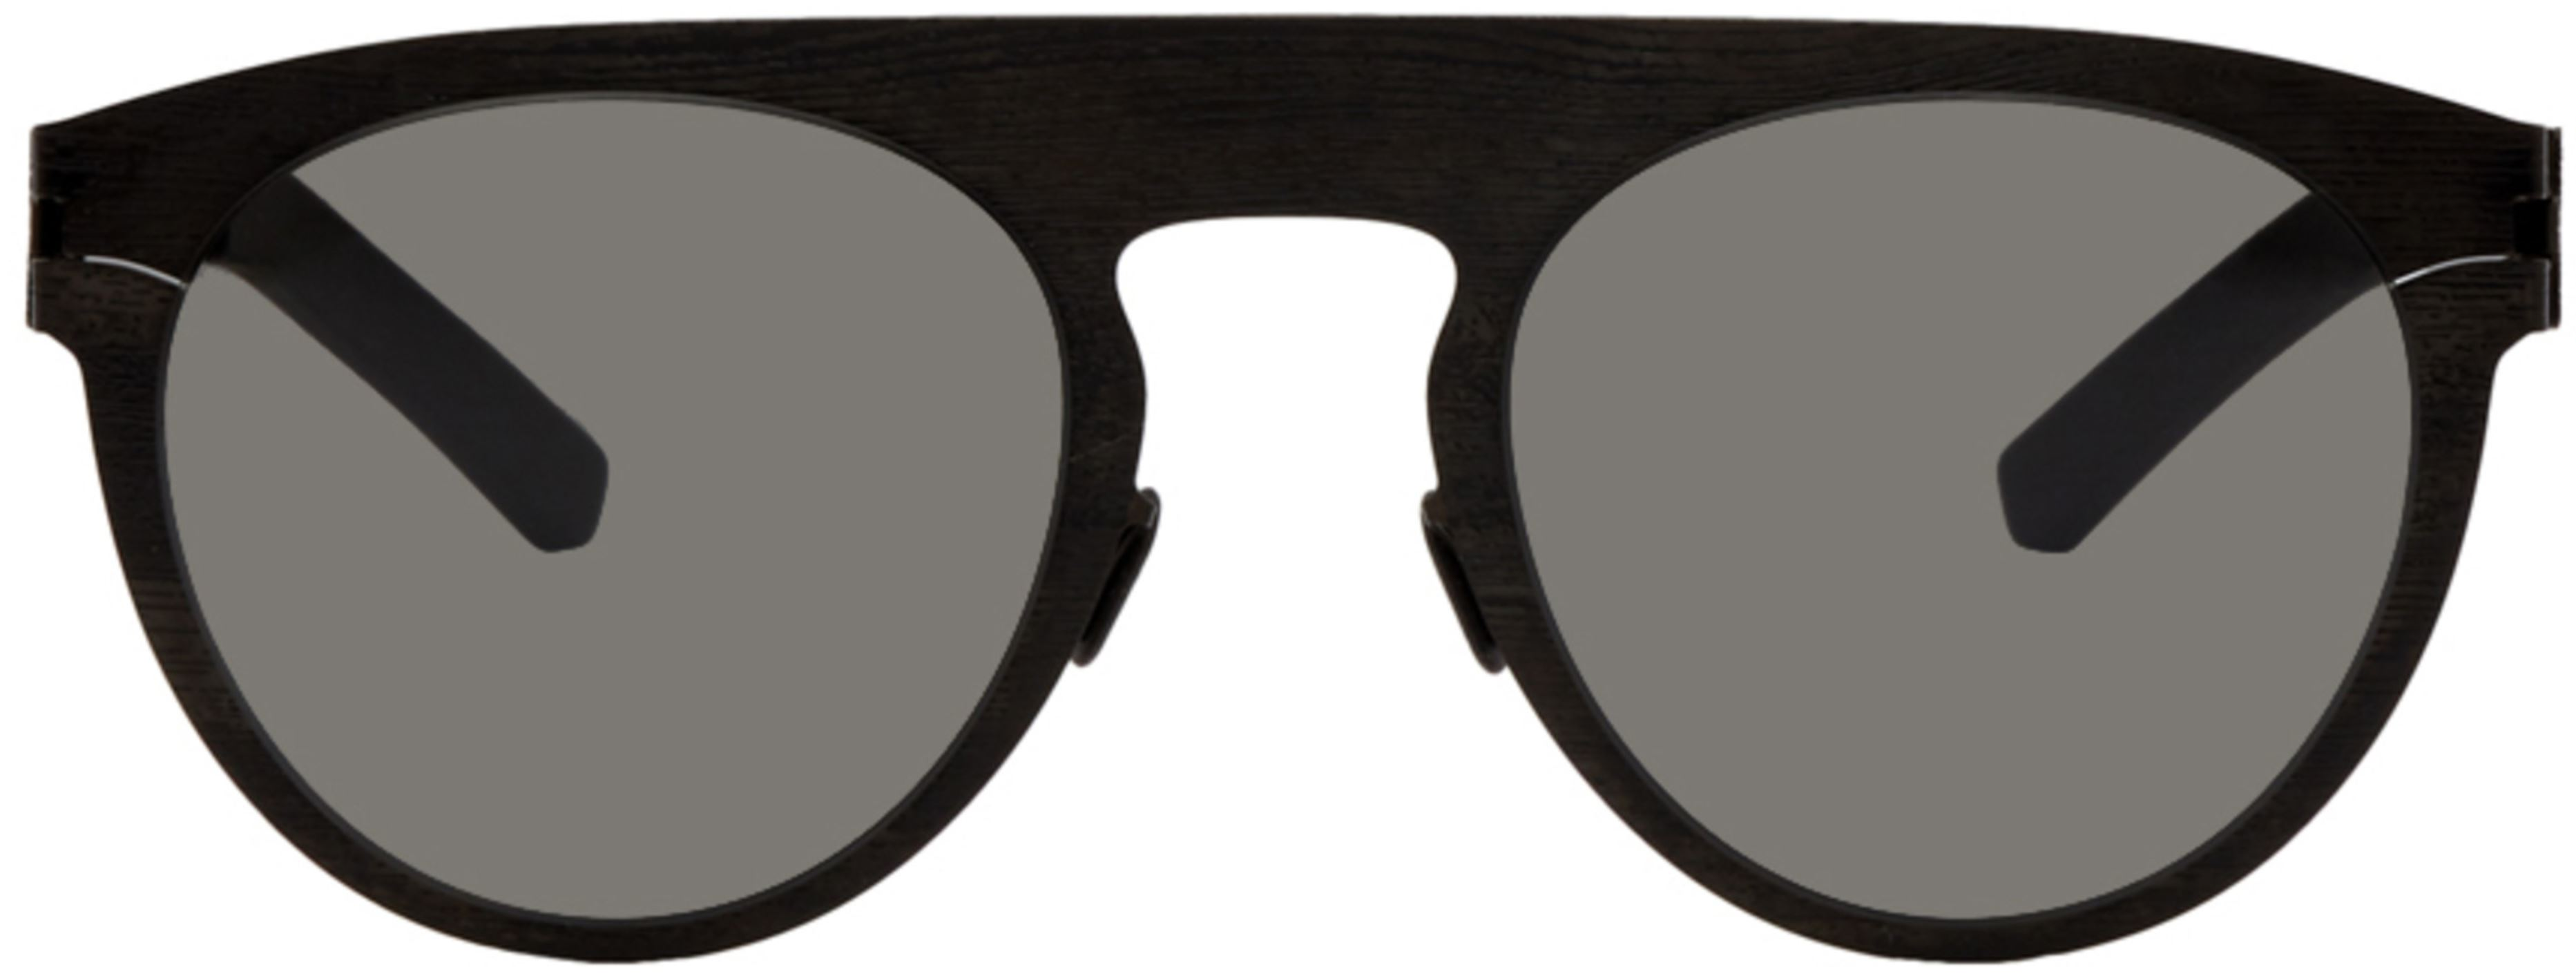 Maison Margiela Sunglasses from ssense.com